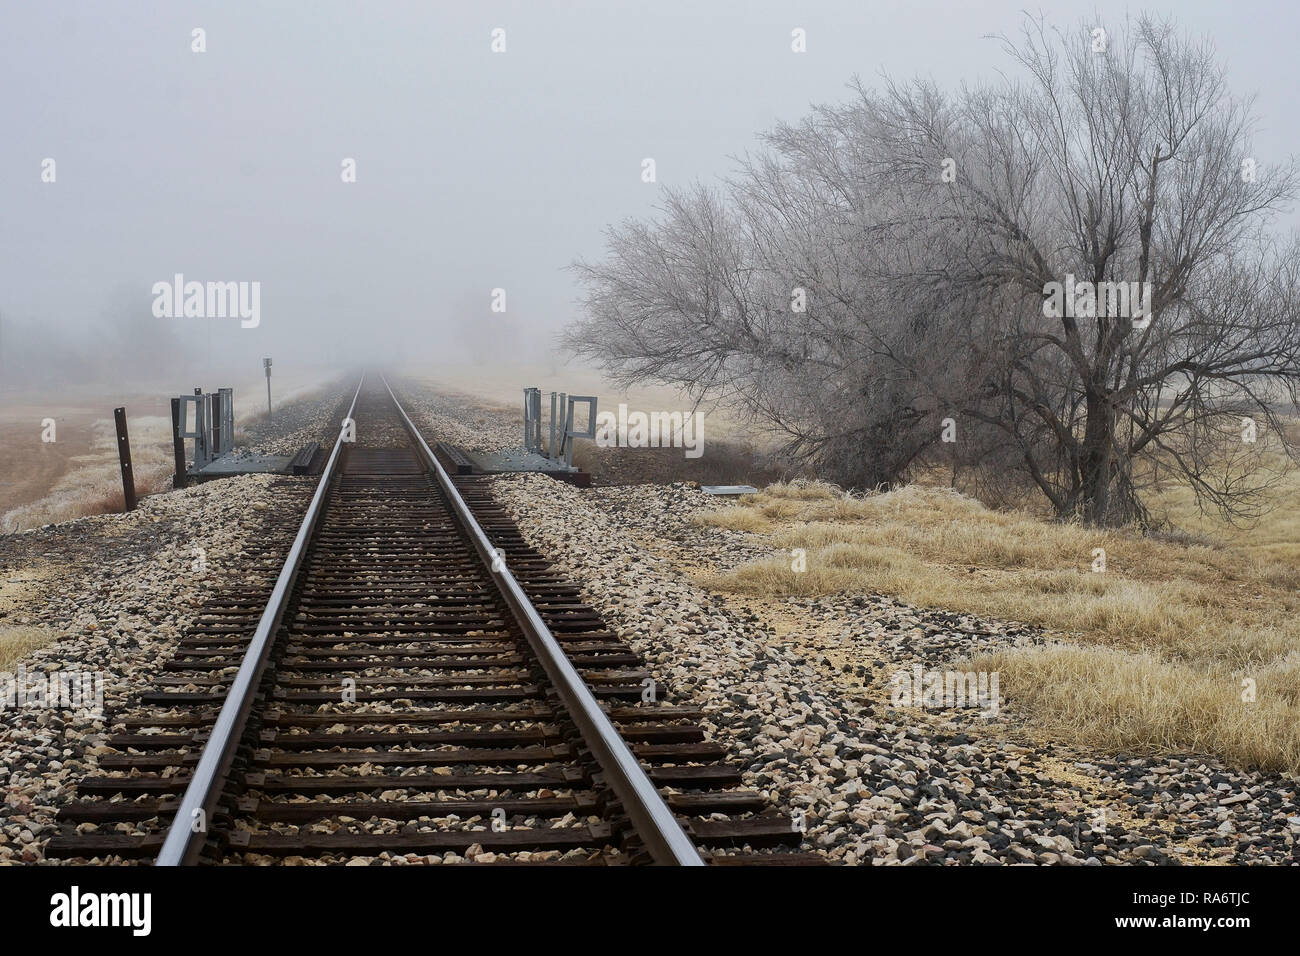 Railroad tracks in Alpine, Texas, on a foggy winter evening. - Stock Image